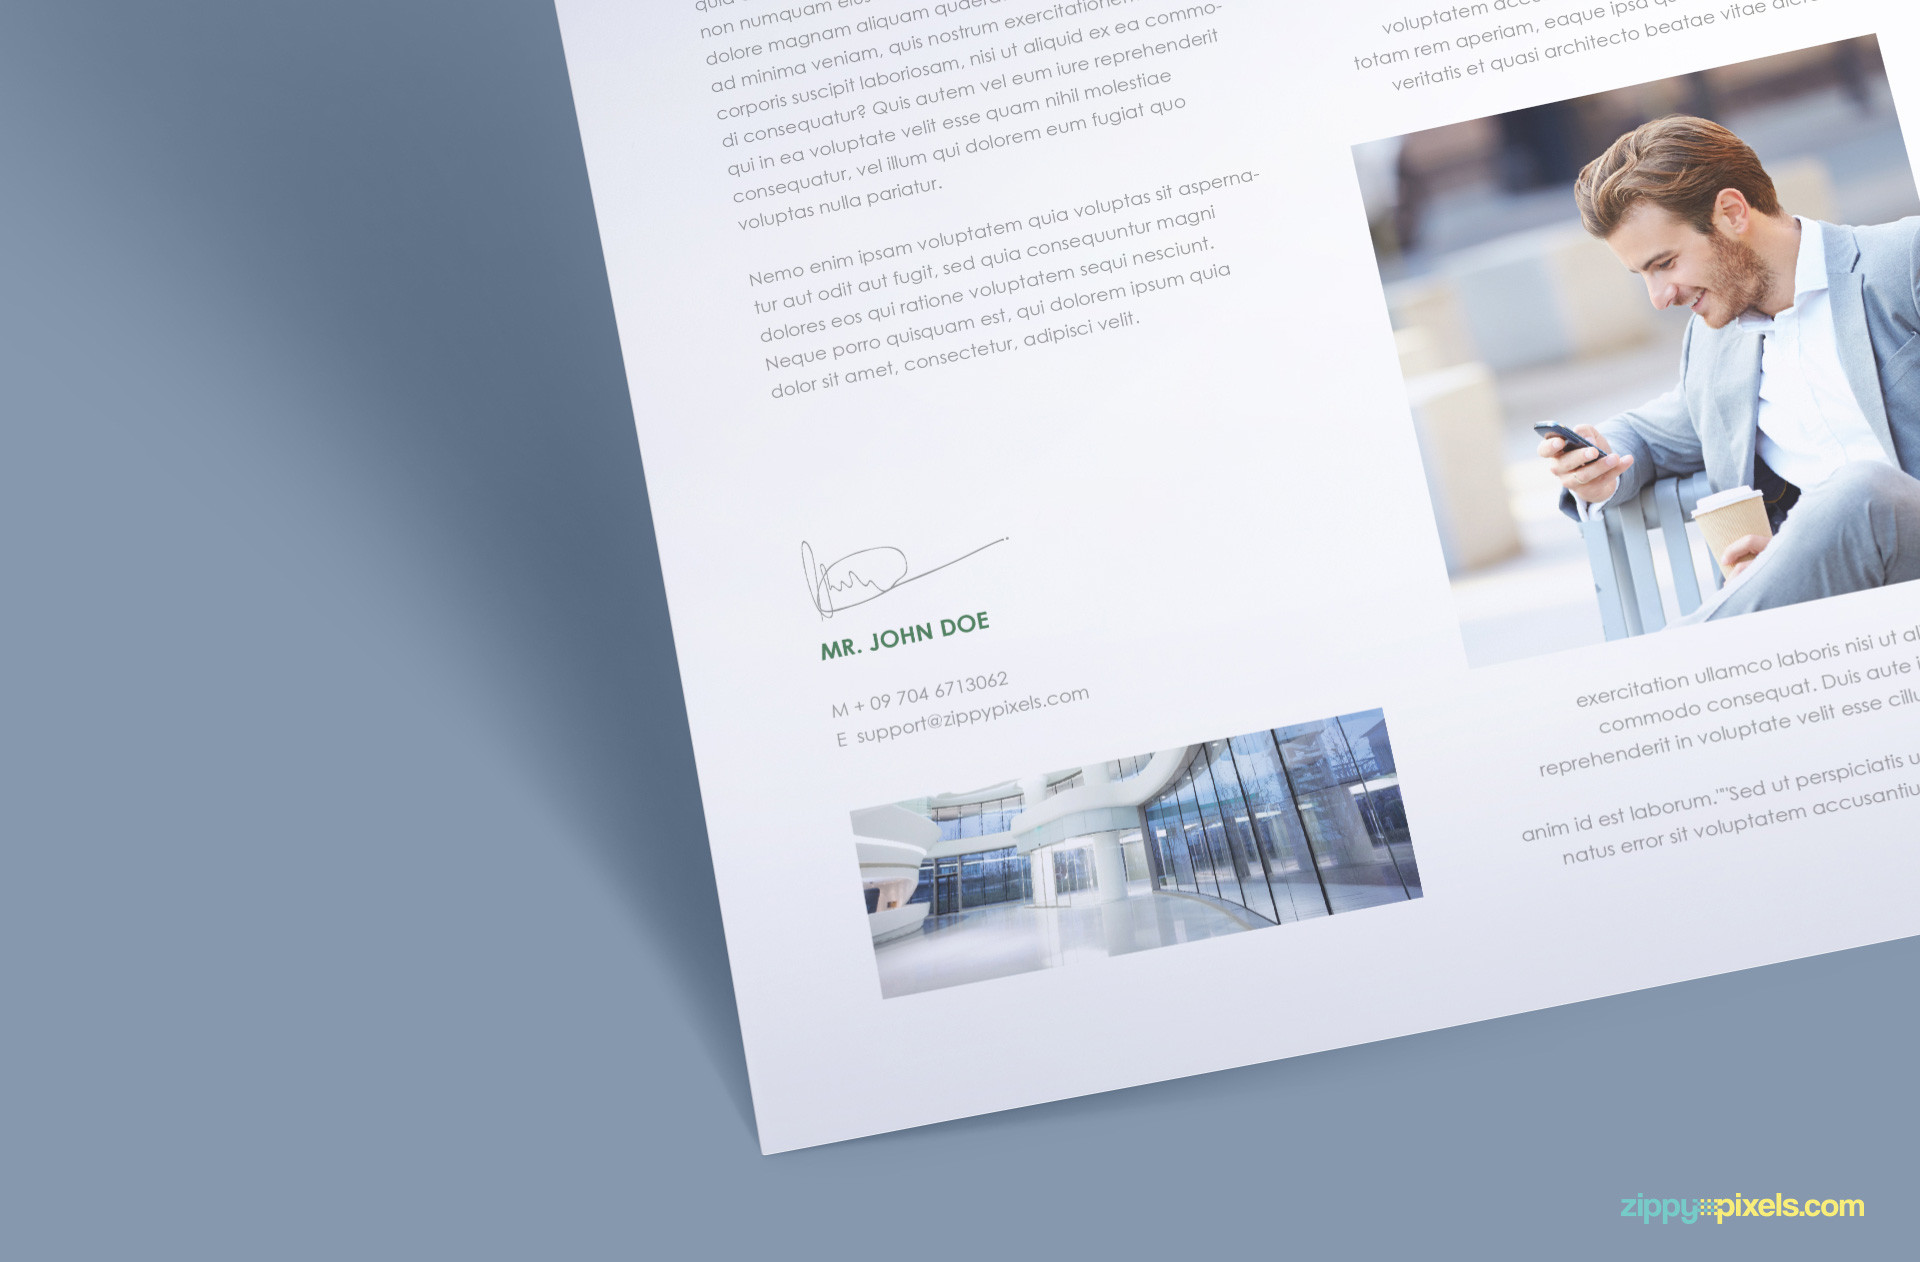 a4 paper PSD mockup for branding